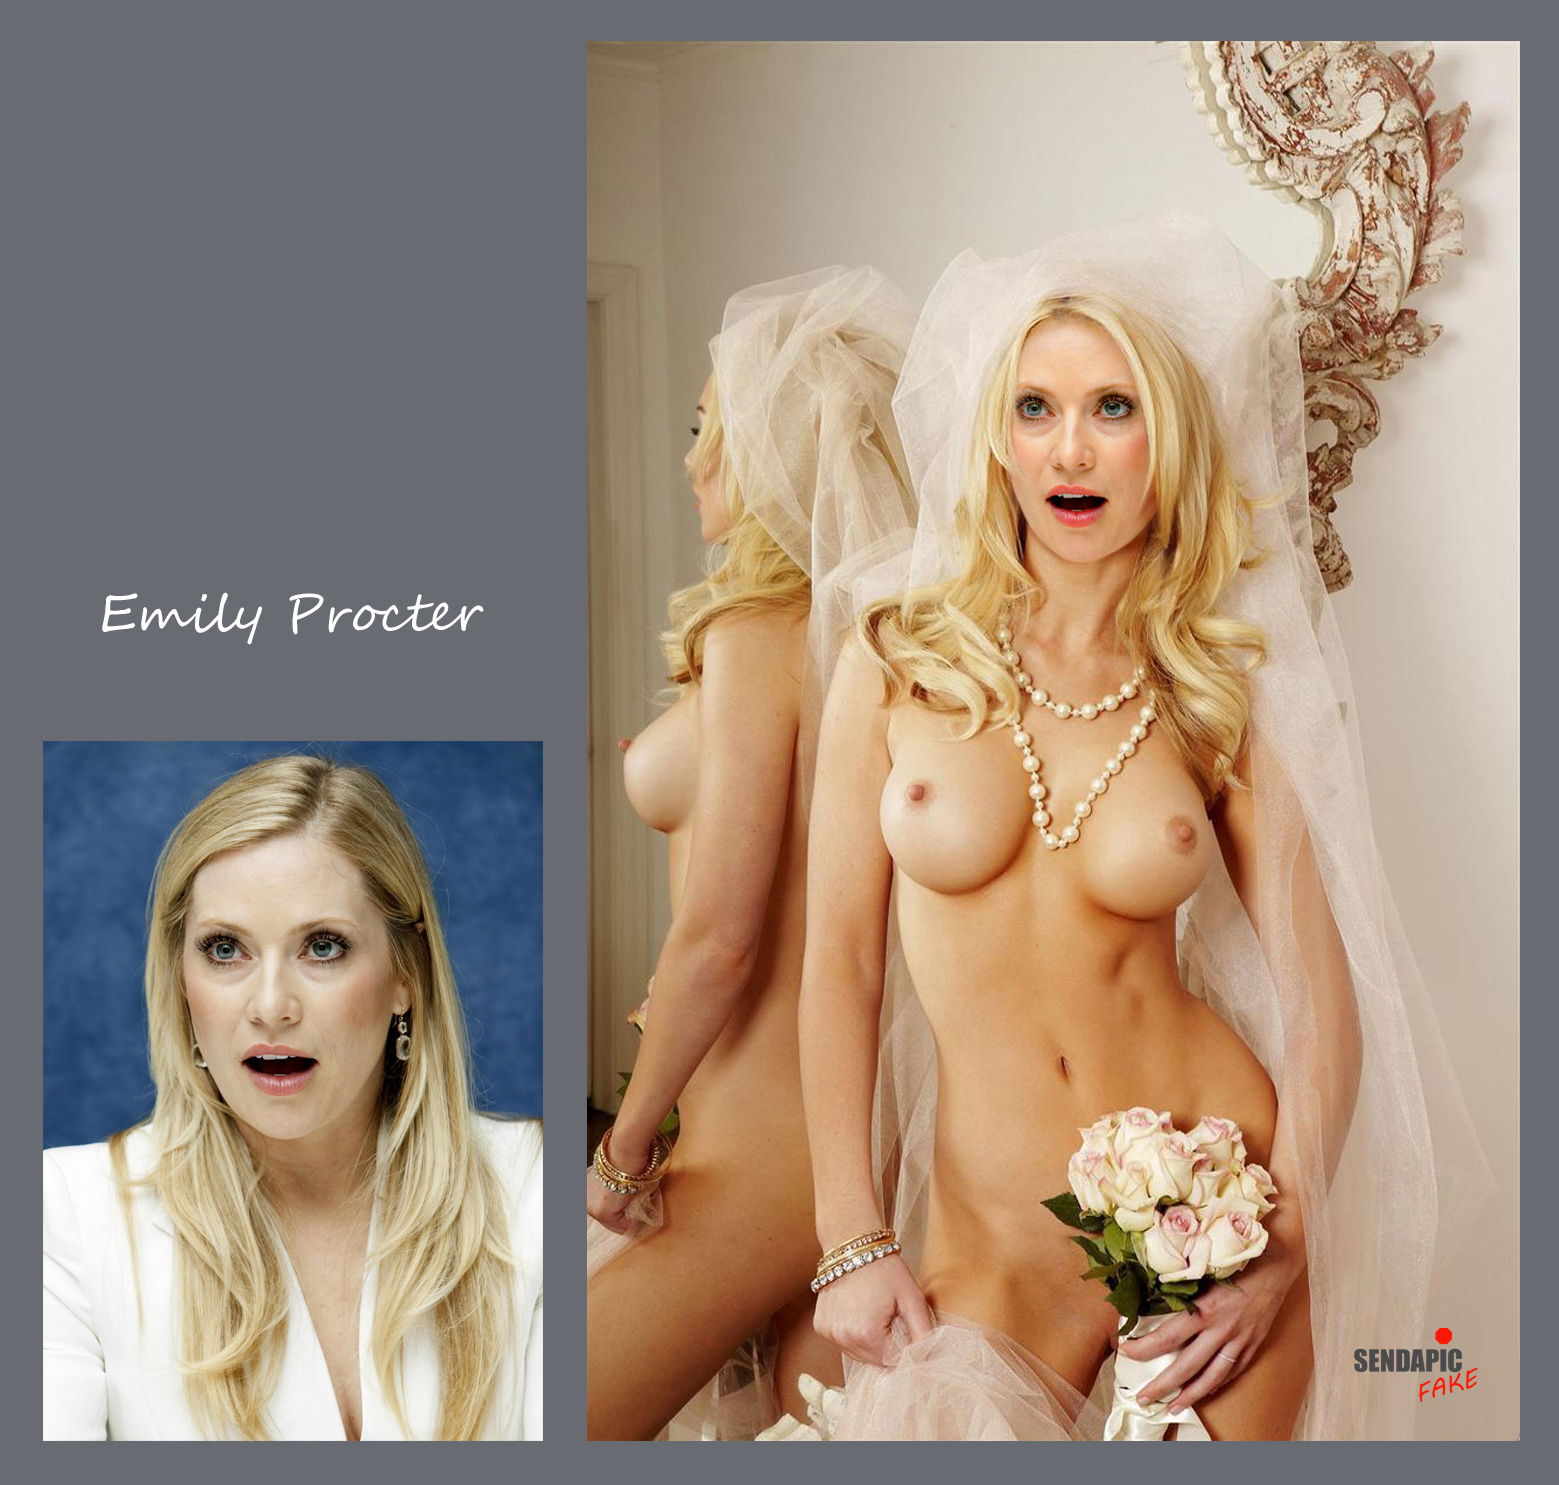 Inuyasha xxx emily procter sex videos teachers